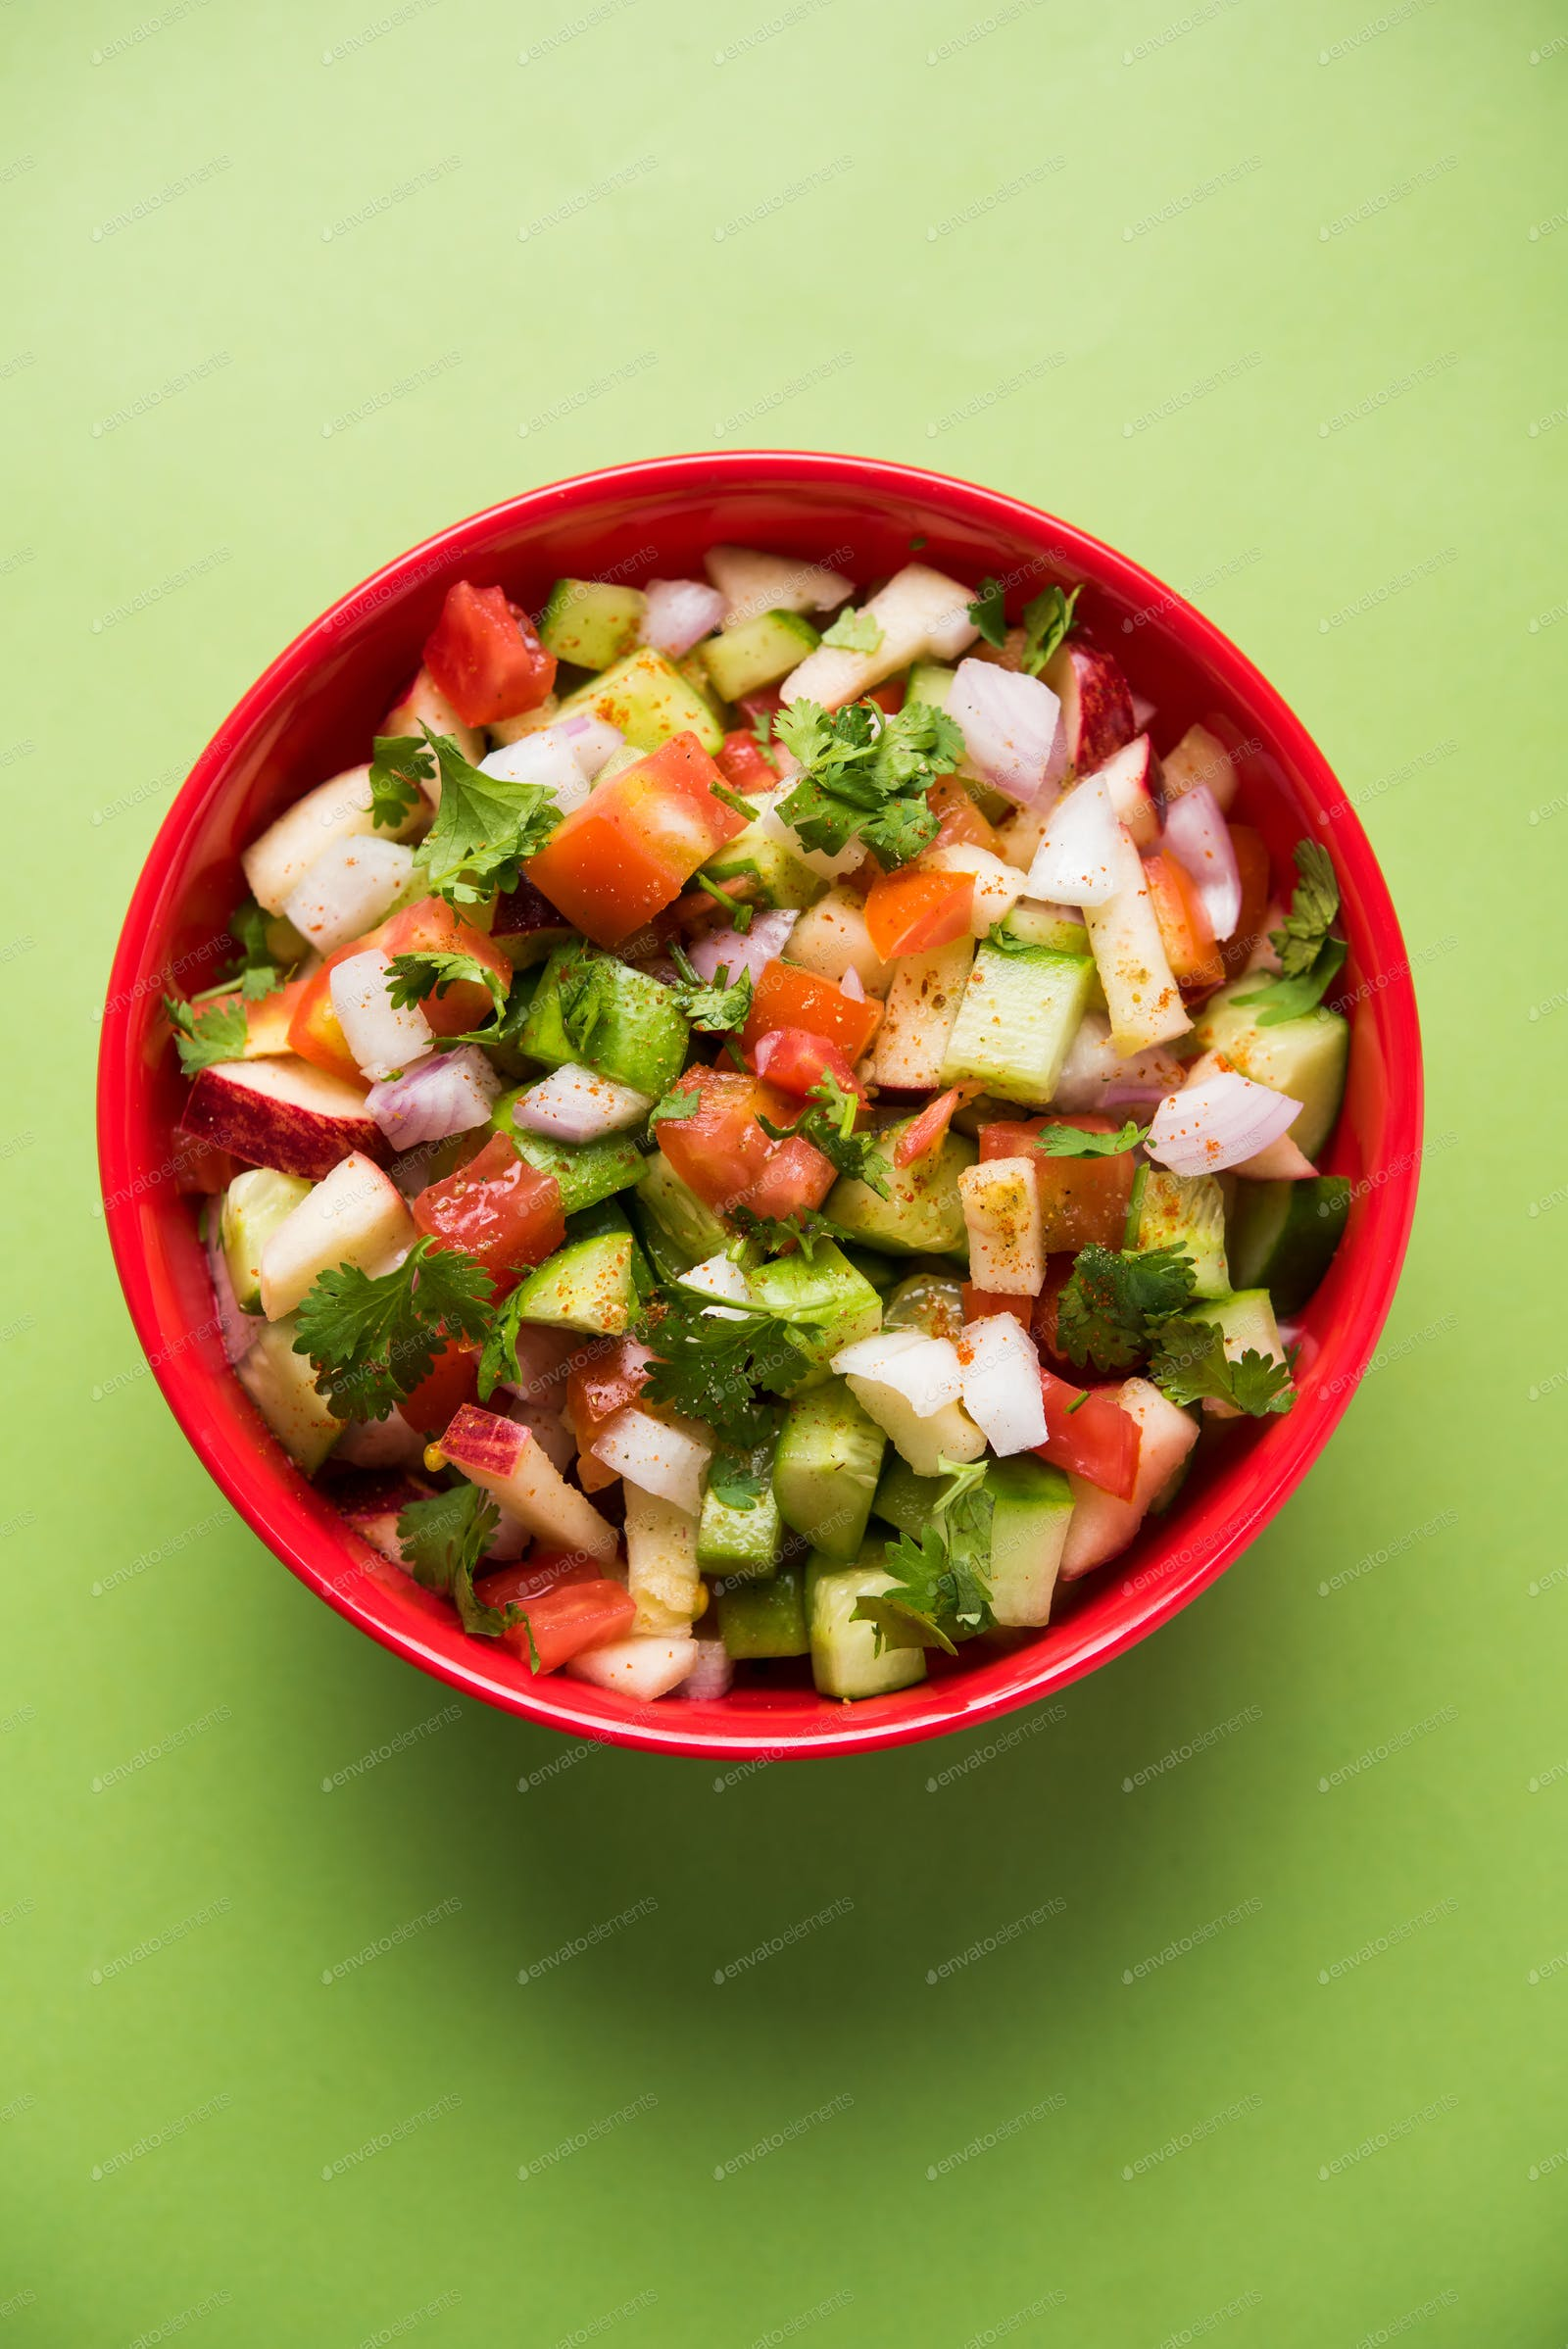 Kachumber Indian Green Salad Photo By Stockimagefactory On Envato Elements